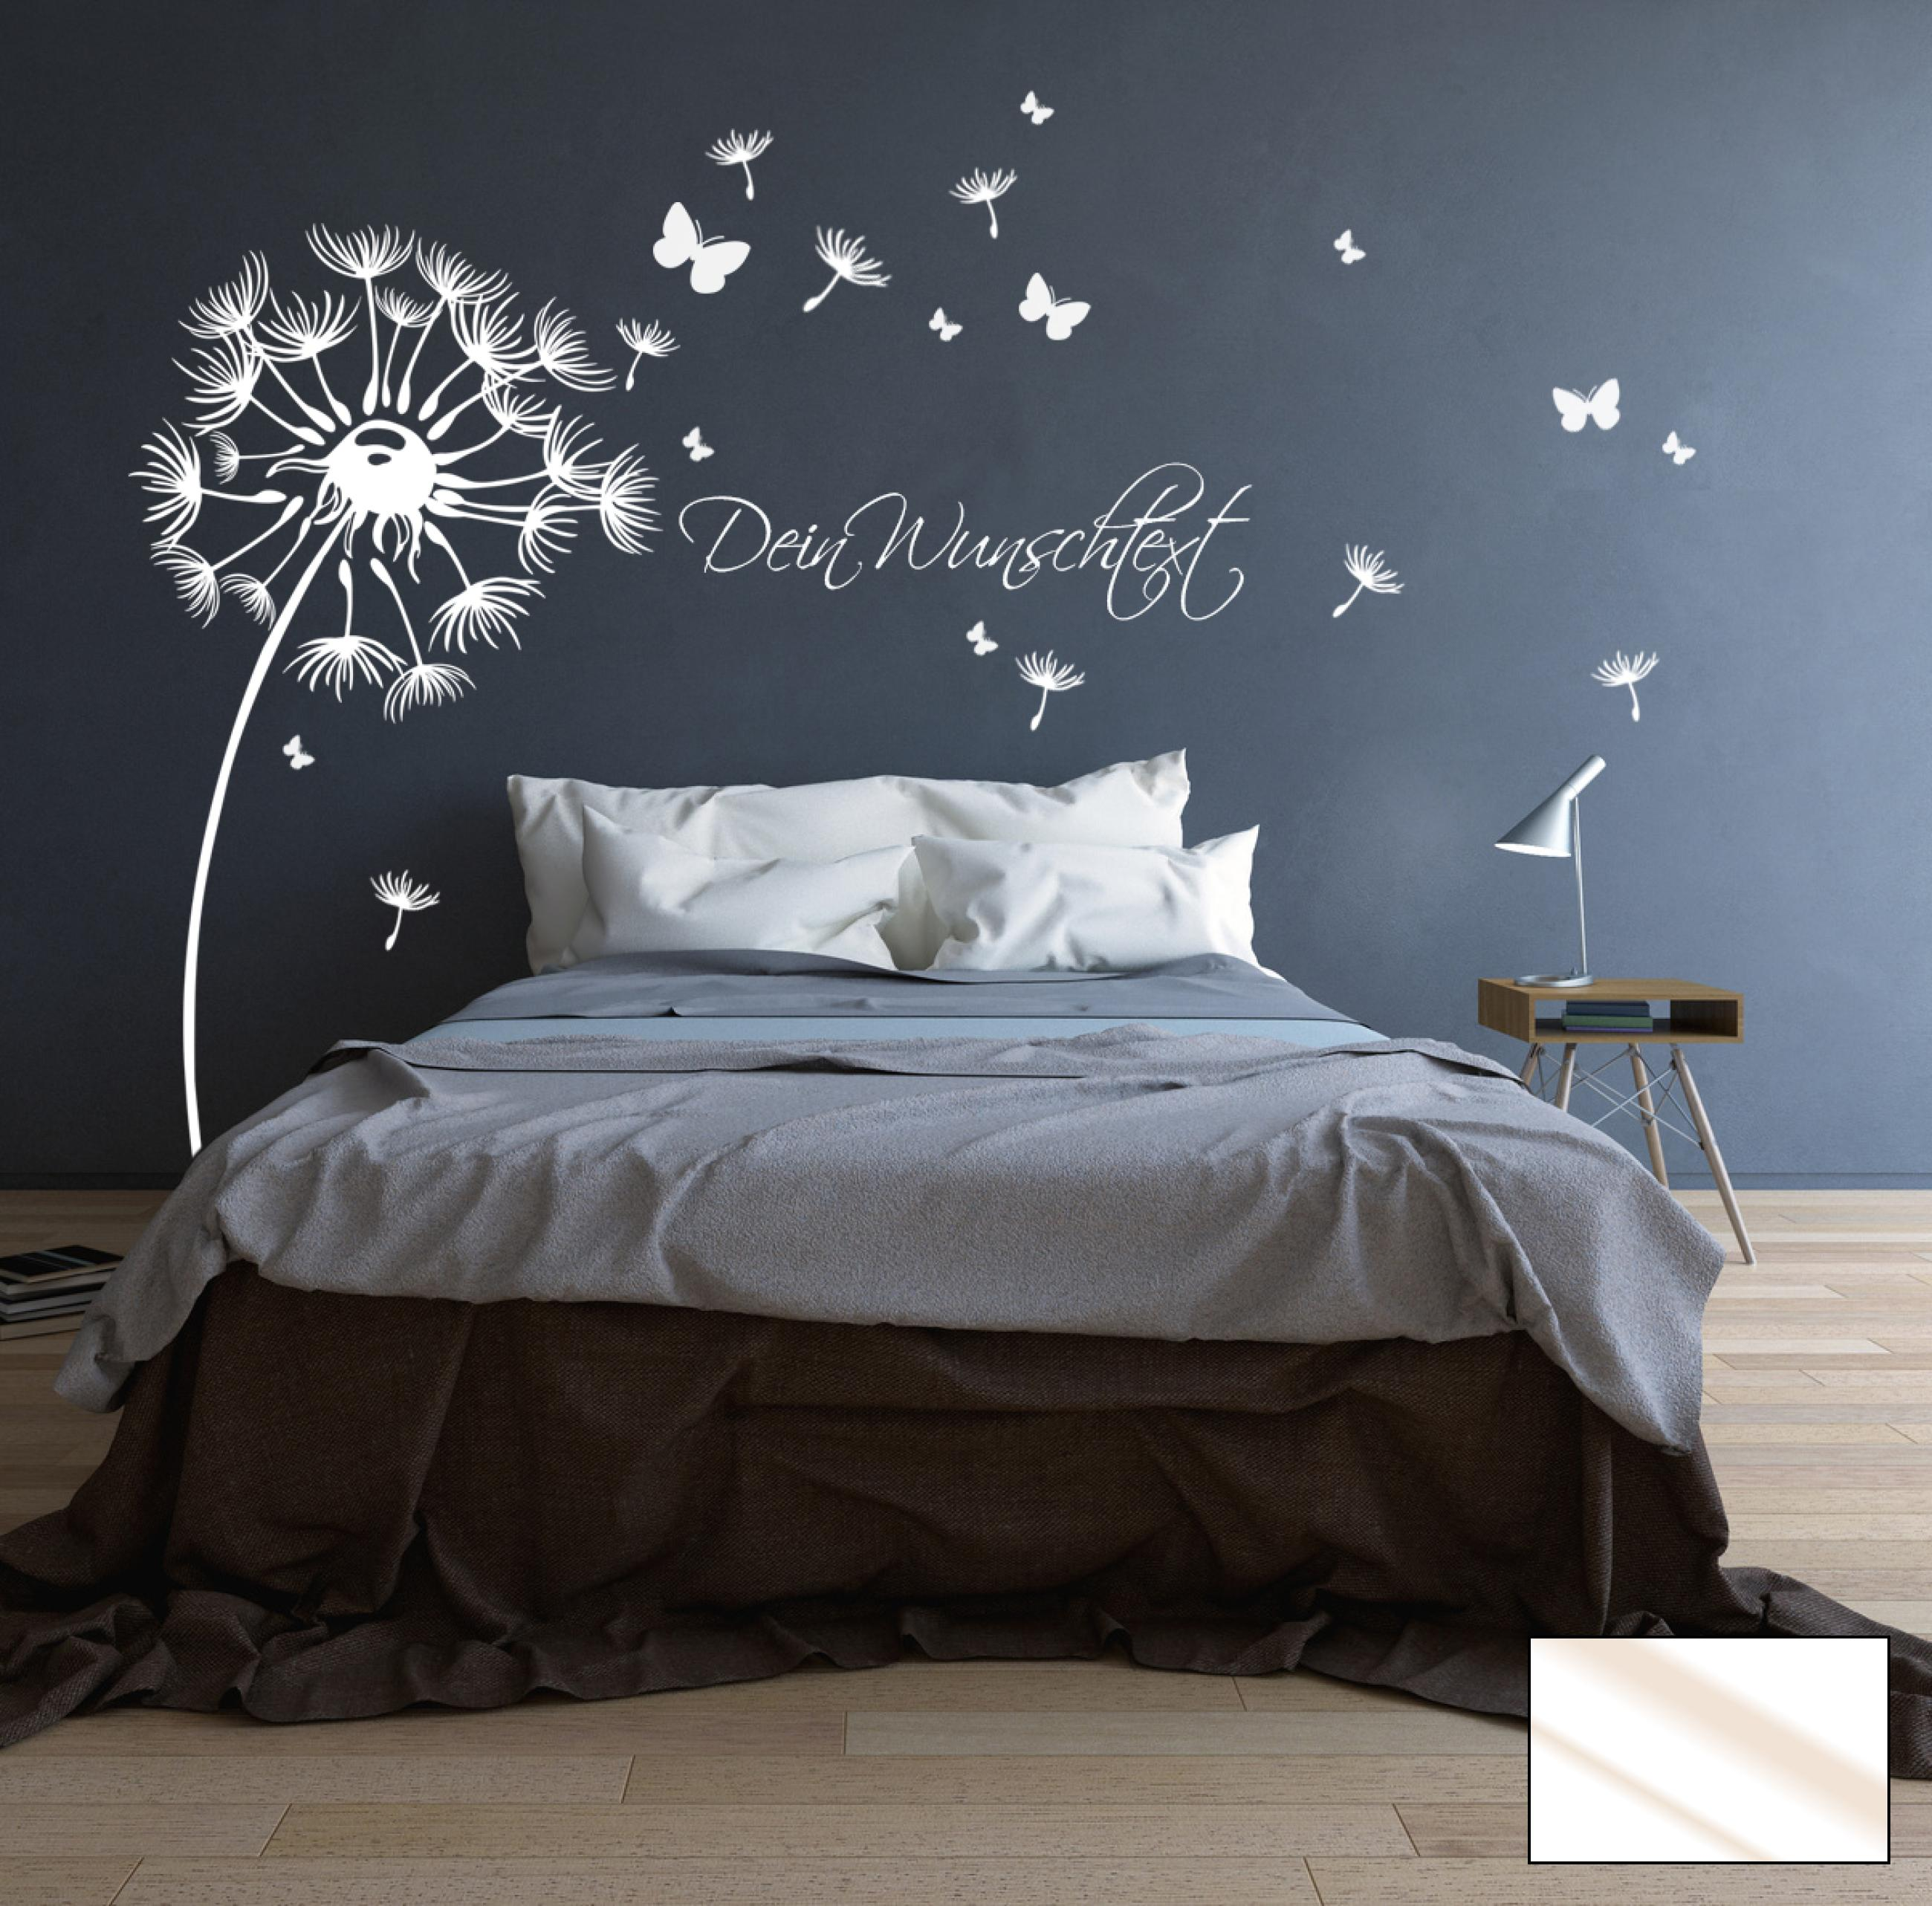 wandtattoo pusteblume bl ten schmetterlinge wunschtext m1416 ebay. Black Bedroom Furniture Sets. Home Design Ideas